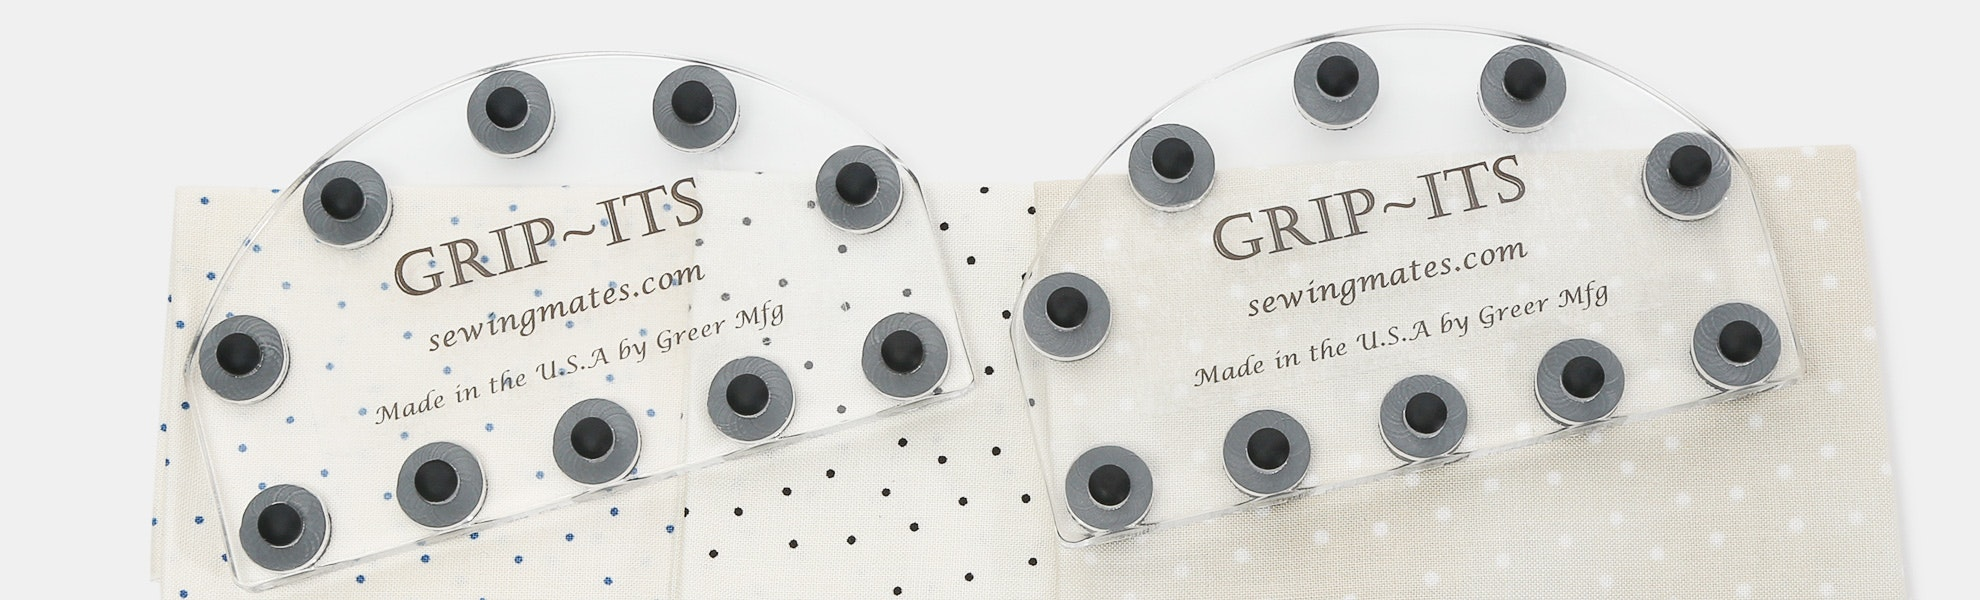 Grip-Its by Sewing Mates